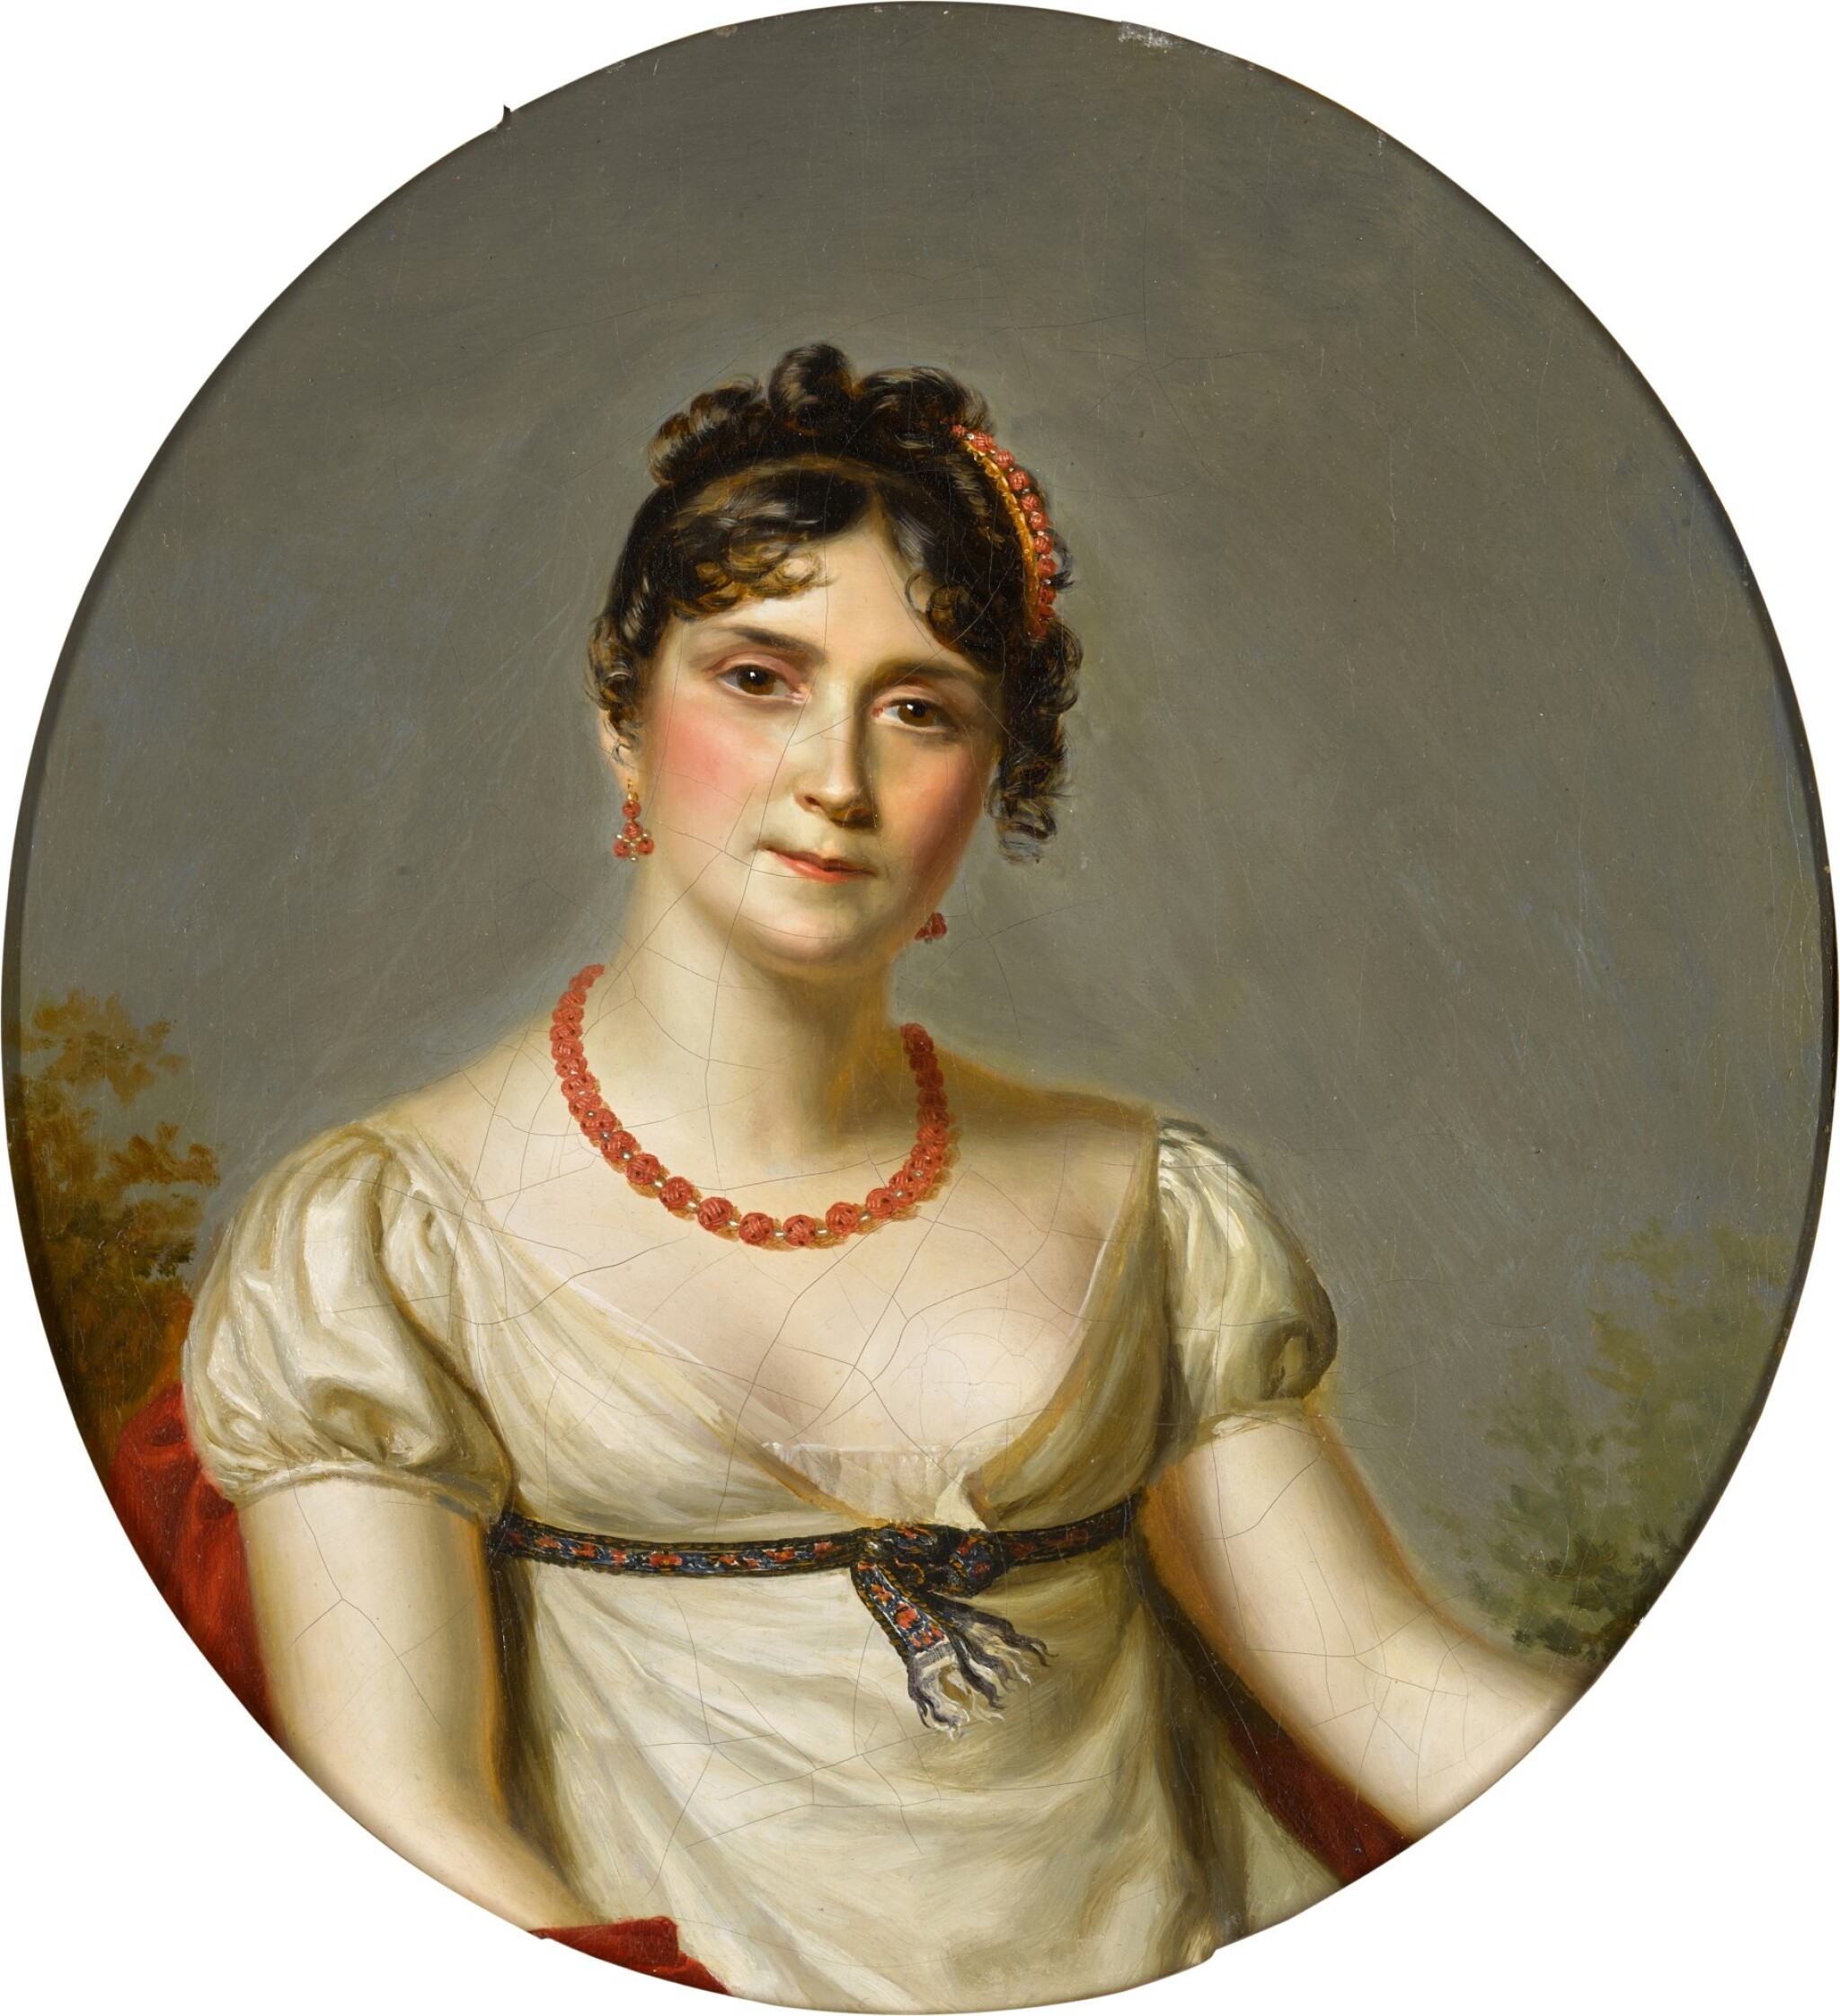 View full screen - View 1 of Lot 65. Portrait of the Empress Josephine of France (1763-1814), bust-length, wearing a white muslin dress.